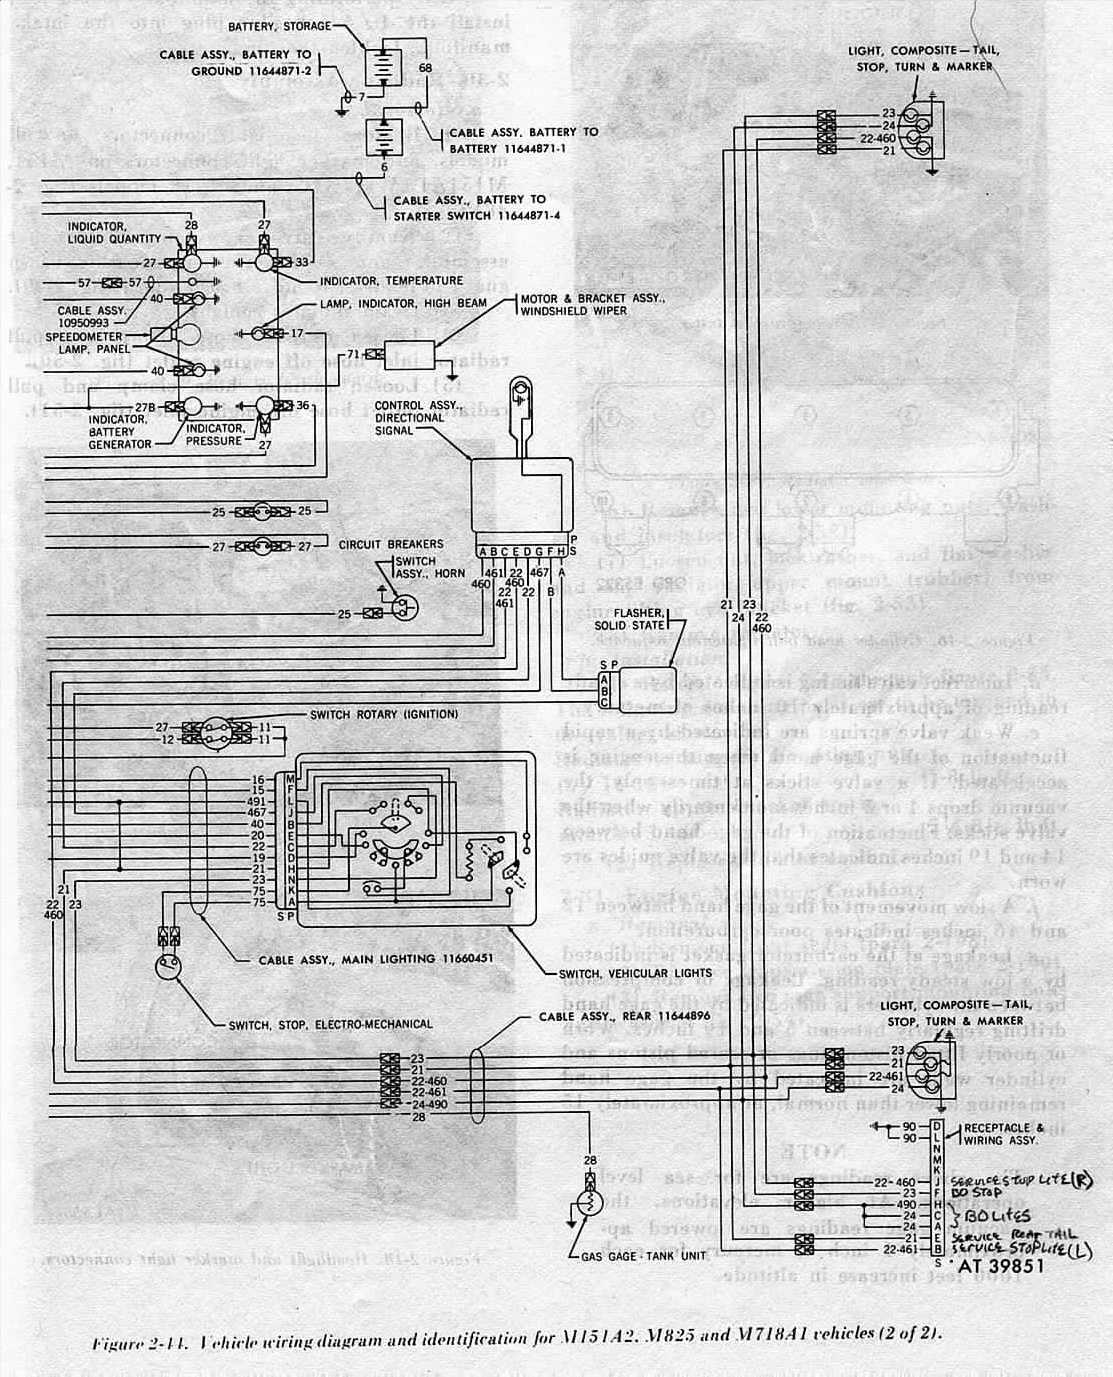 m151a2 wiring diagram m151a2 wiring diagrams m151a2 wire 2 m a wiring diagram m151a2 wire 2